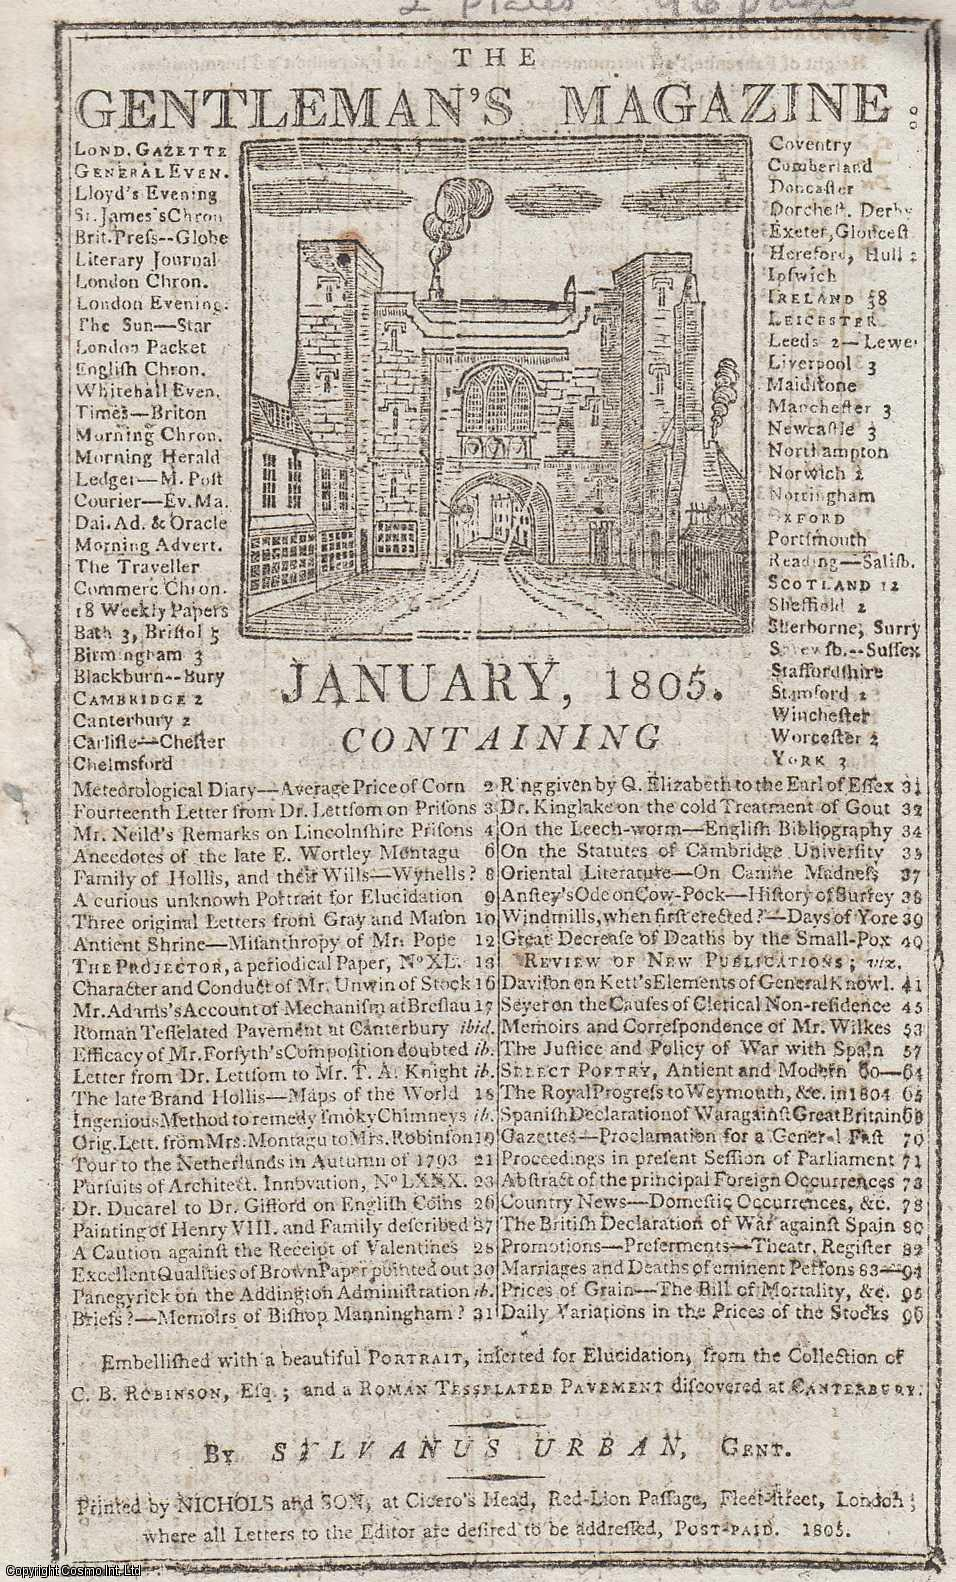 The Gentleman's Magazine for January 1805.  FEATURING Two Plates; Ancient Portrait from Charles B. Robinson's Collection & Tasselated Pavement found in Canterbury, 1758., Urban, Sylvanus.